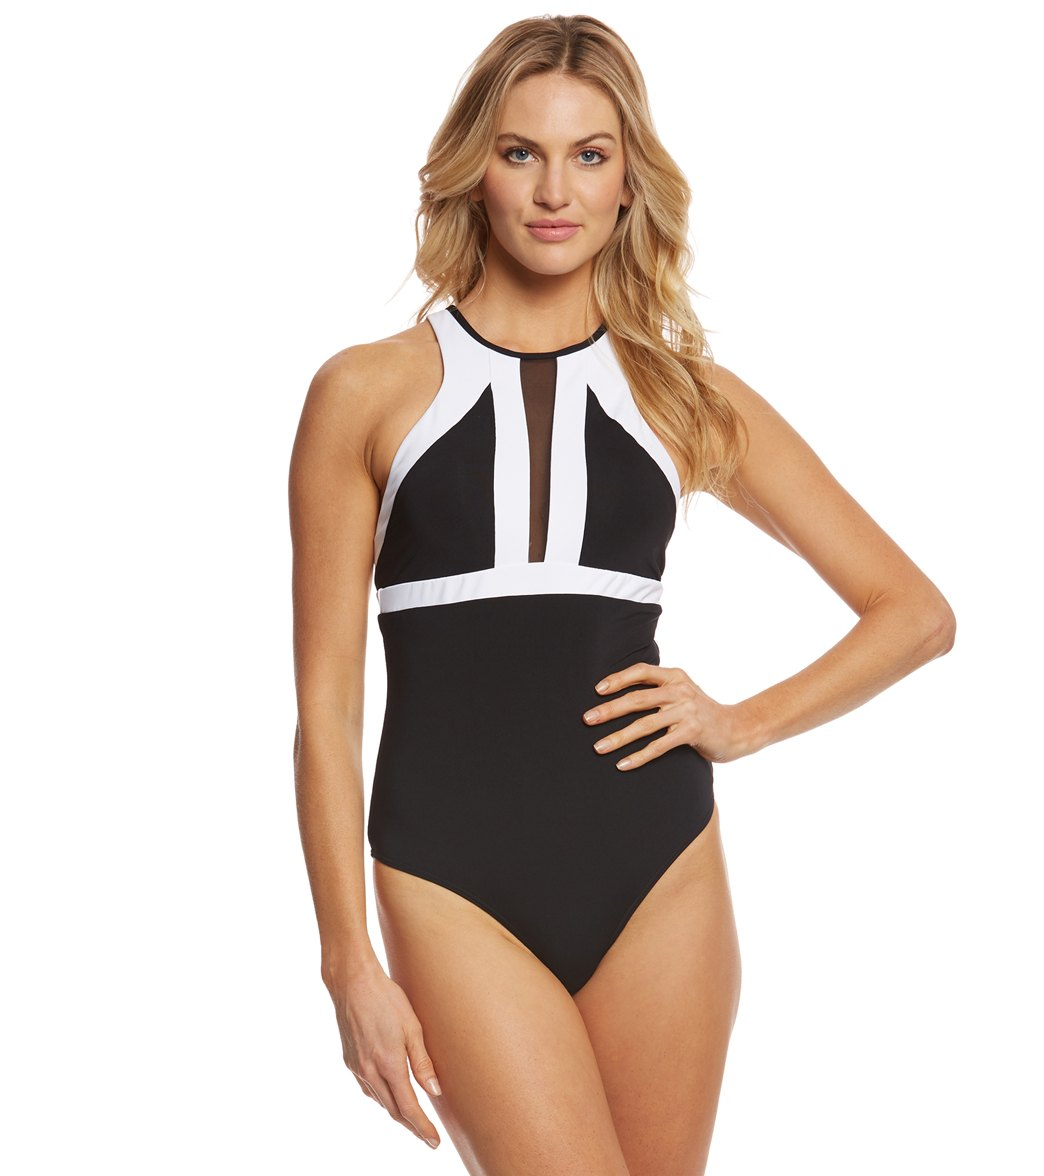 a89354c78e6 JETS by Jessika Allen Classique High Neck One Piece Swimsuit at  SwimOutlet.com - Free Shipping